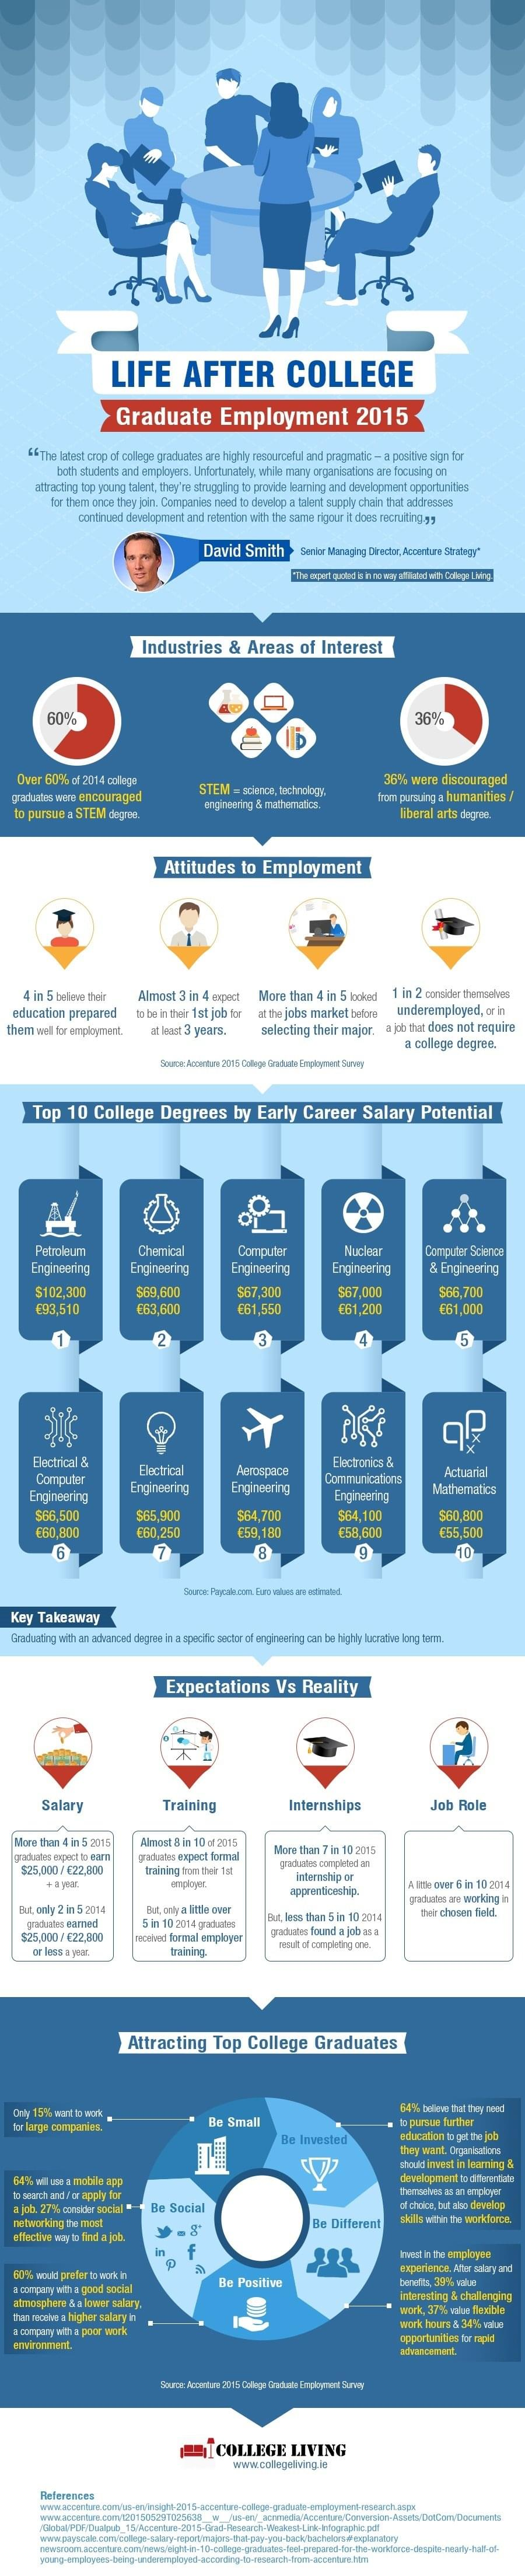 life after college graduate employment statistics infographic life after college infographic